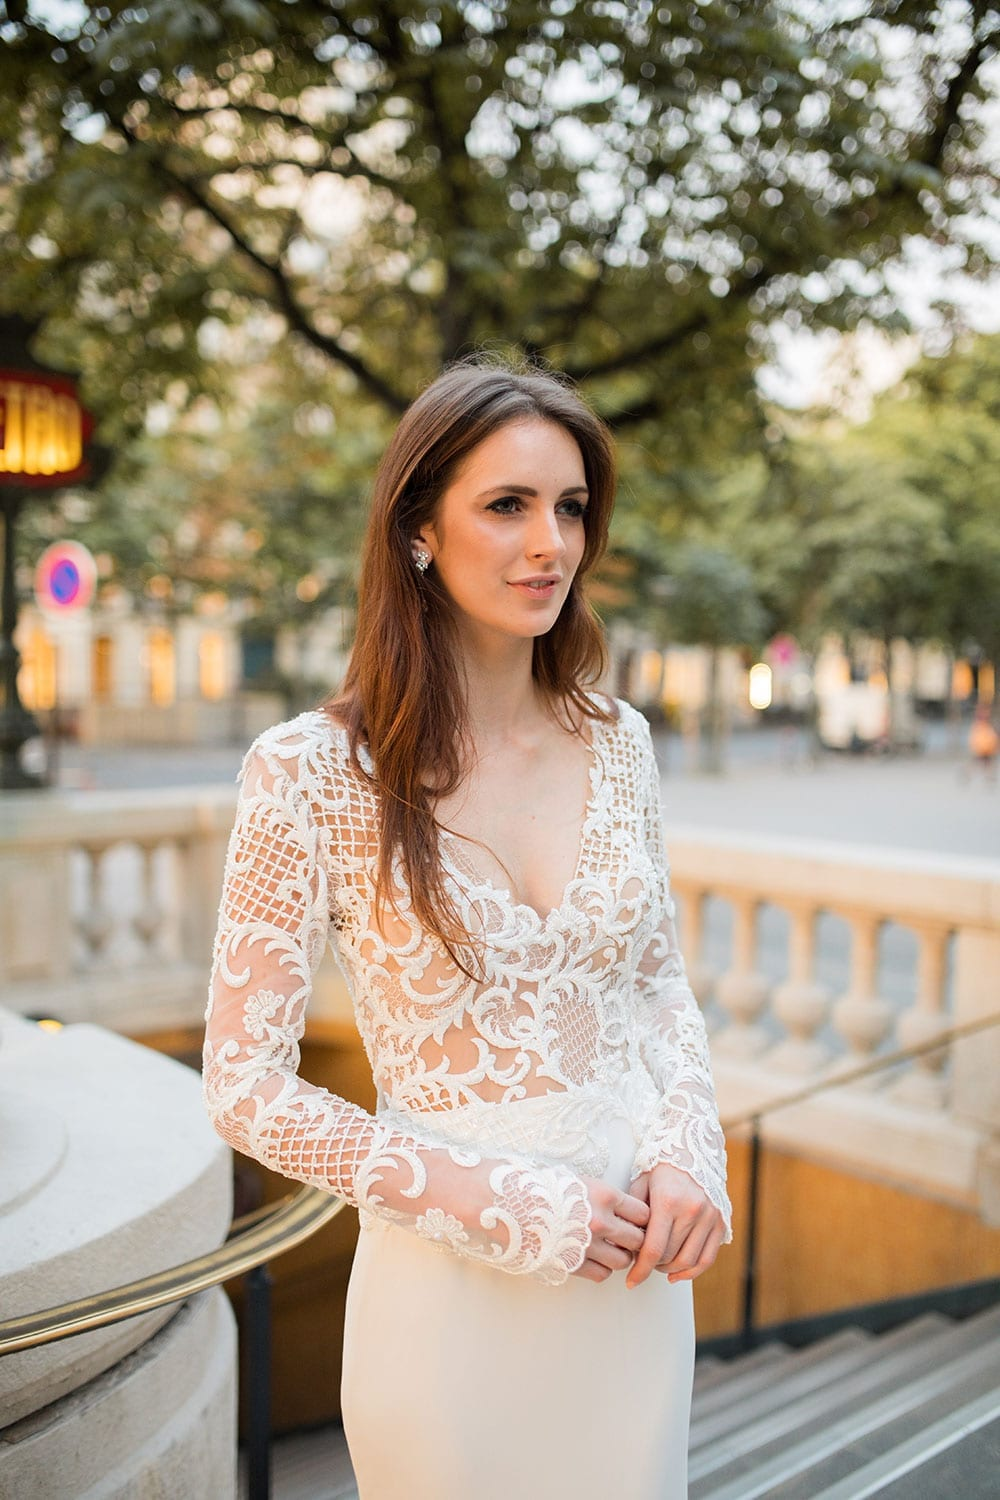 Model wearing Vinka Design Katrina Wedding Dress, a Sheer Beaded Lace Wedding Gown with long sleeves and a train worn on the streets of Paris